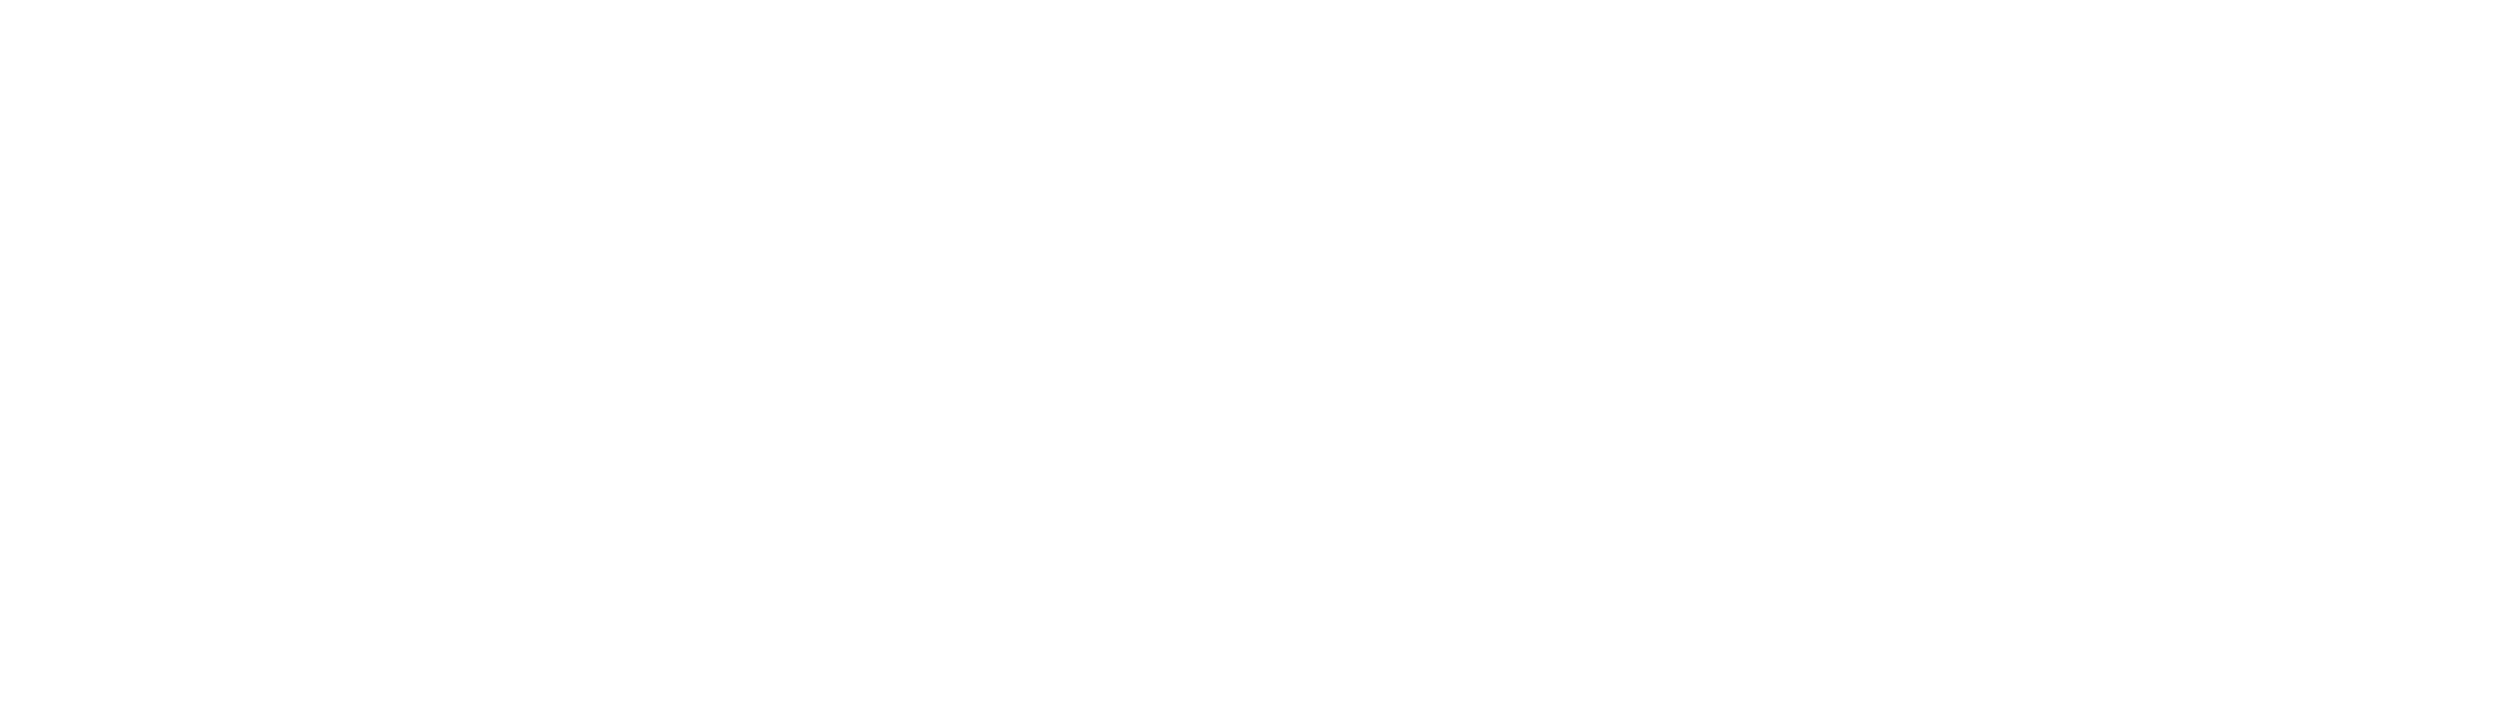 WINNER-LEOS-6.png